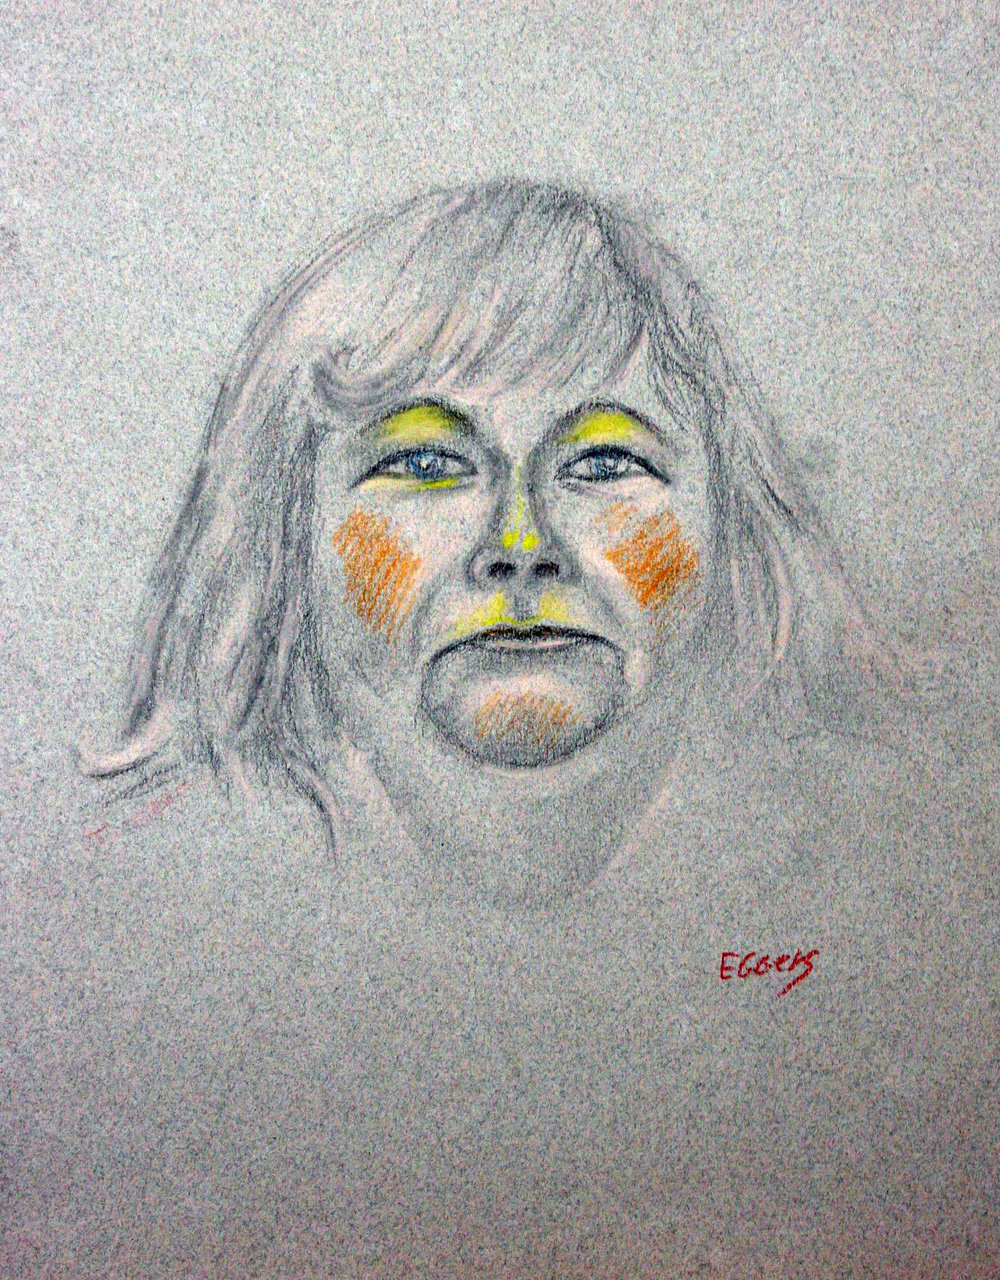 Bob Eggers did this drawing.